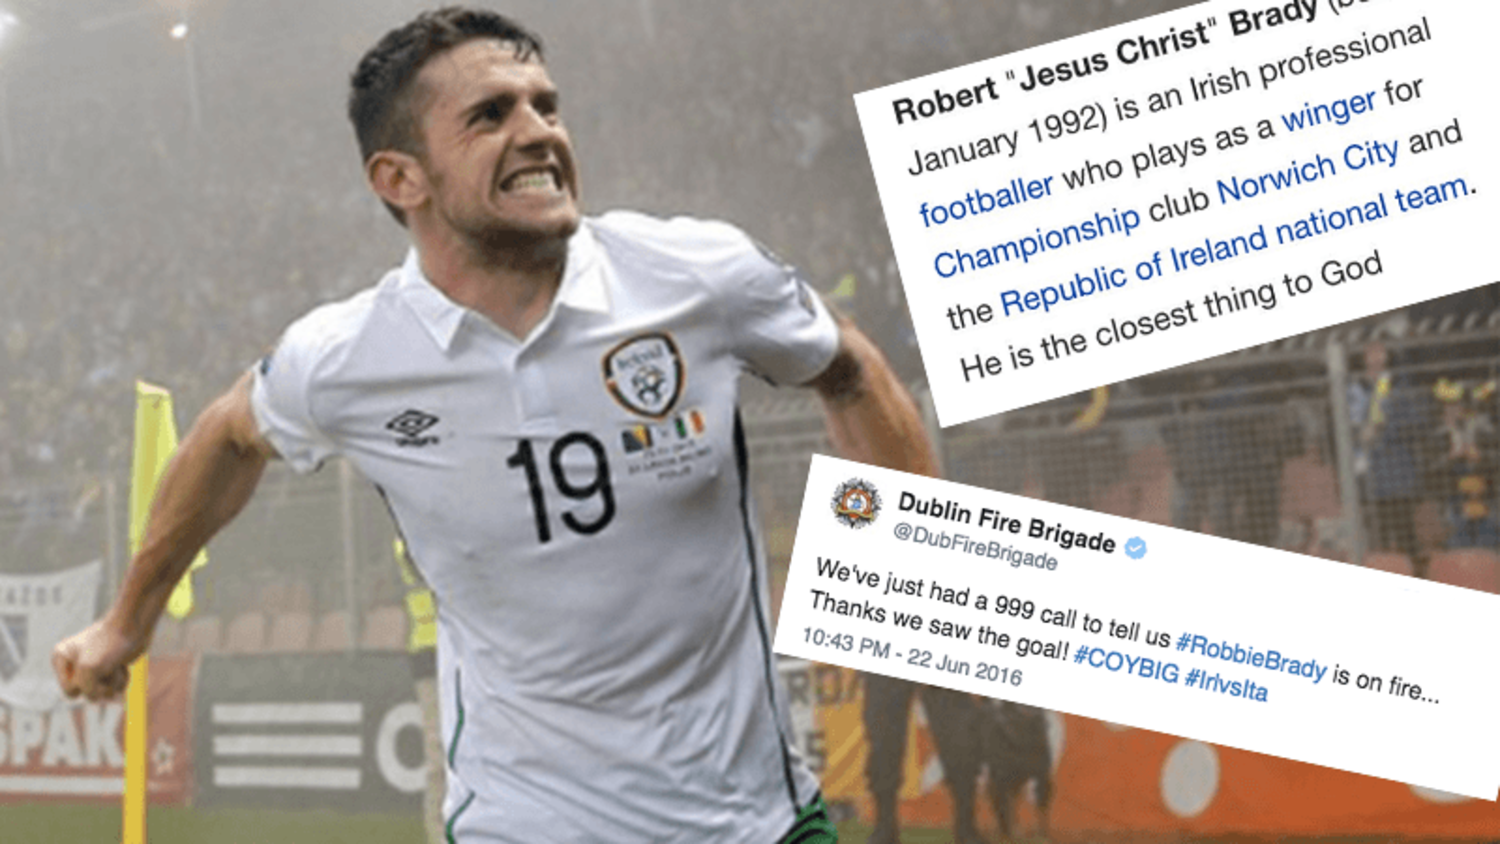 Robbie Brady is 'The Closest Thing To God' | The Greatest Reactions to Ireland's Winner